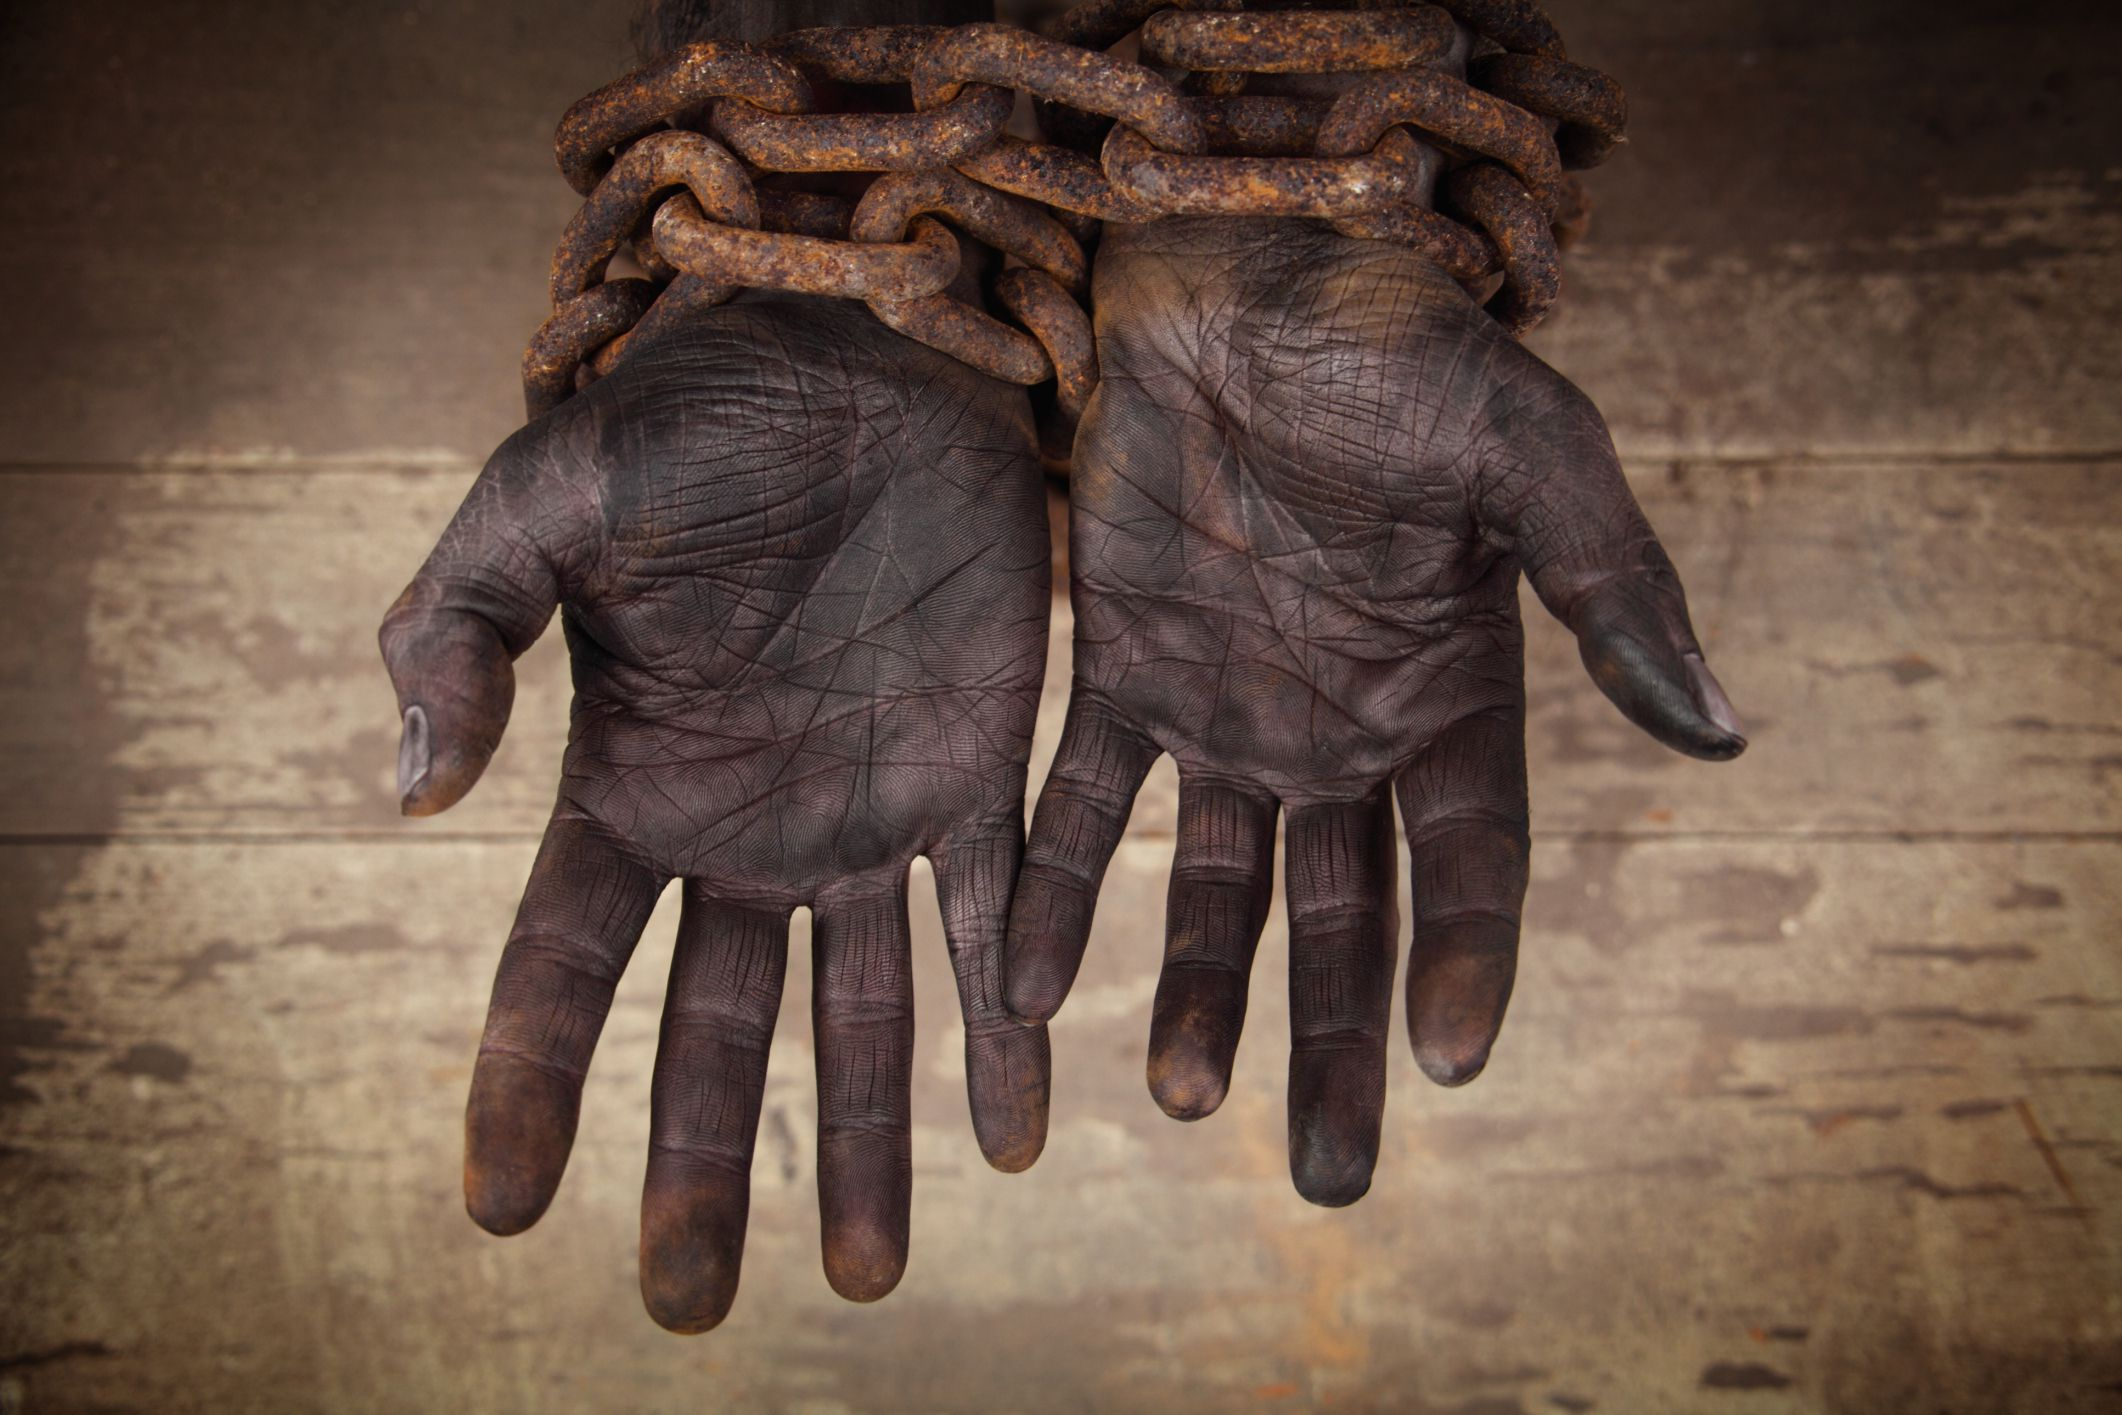 Sold Into Bondage Slavery